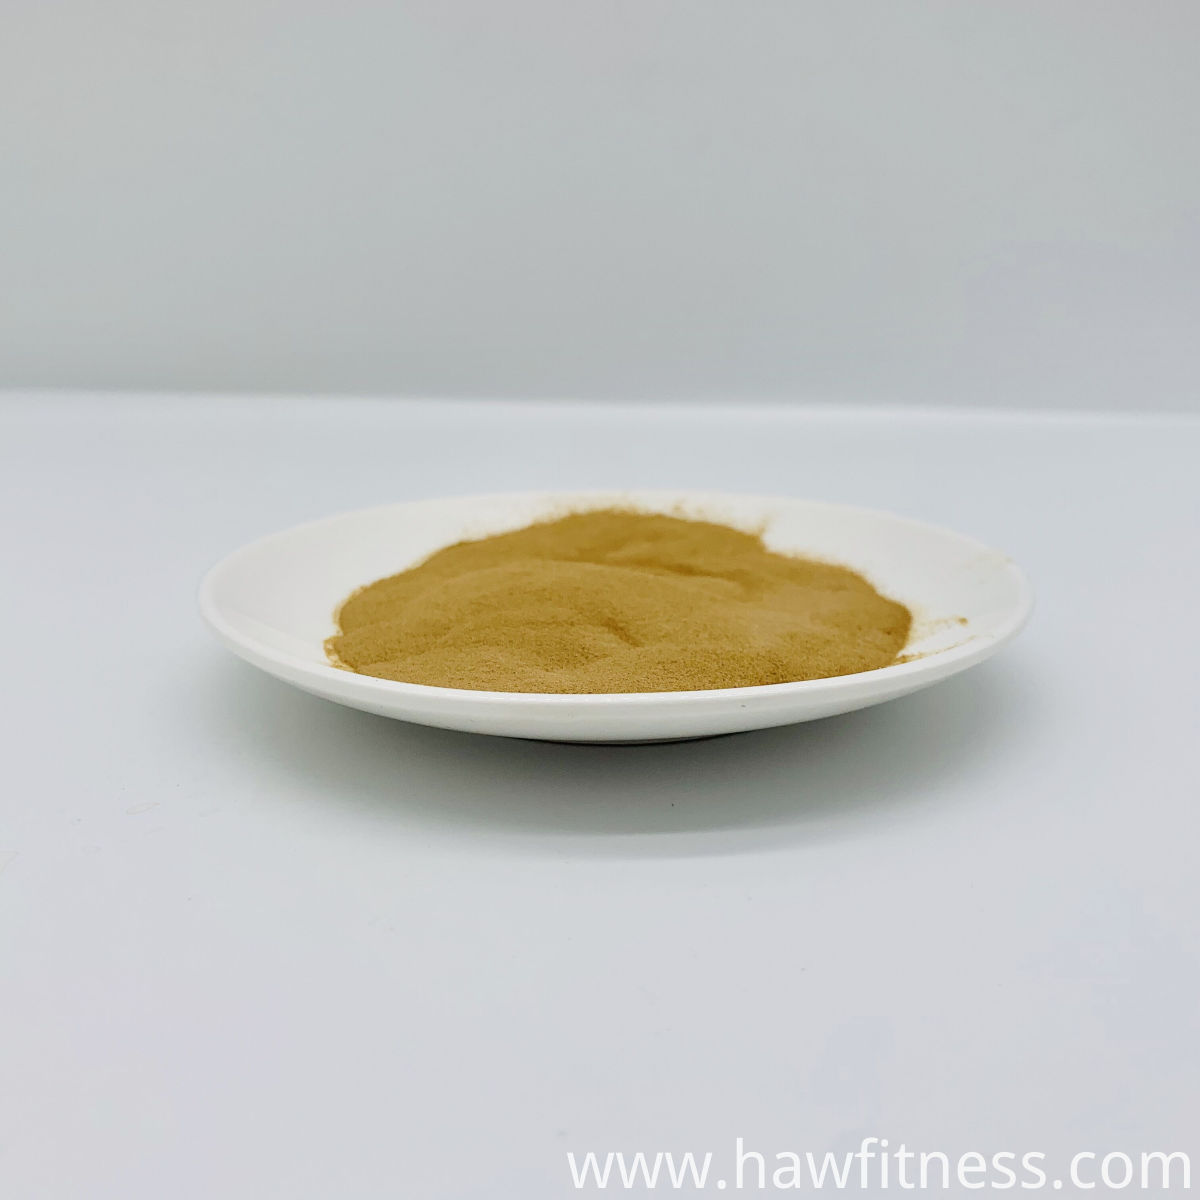 Reed Rhizome Extract for Nutrition